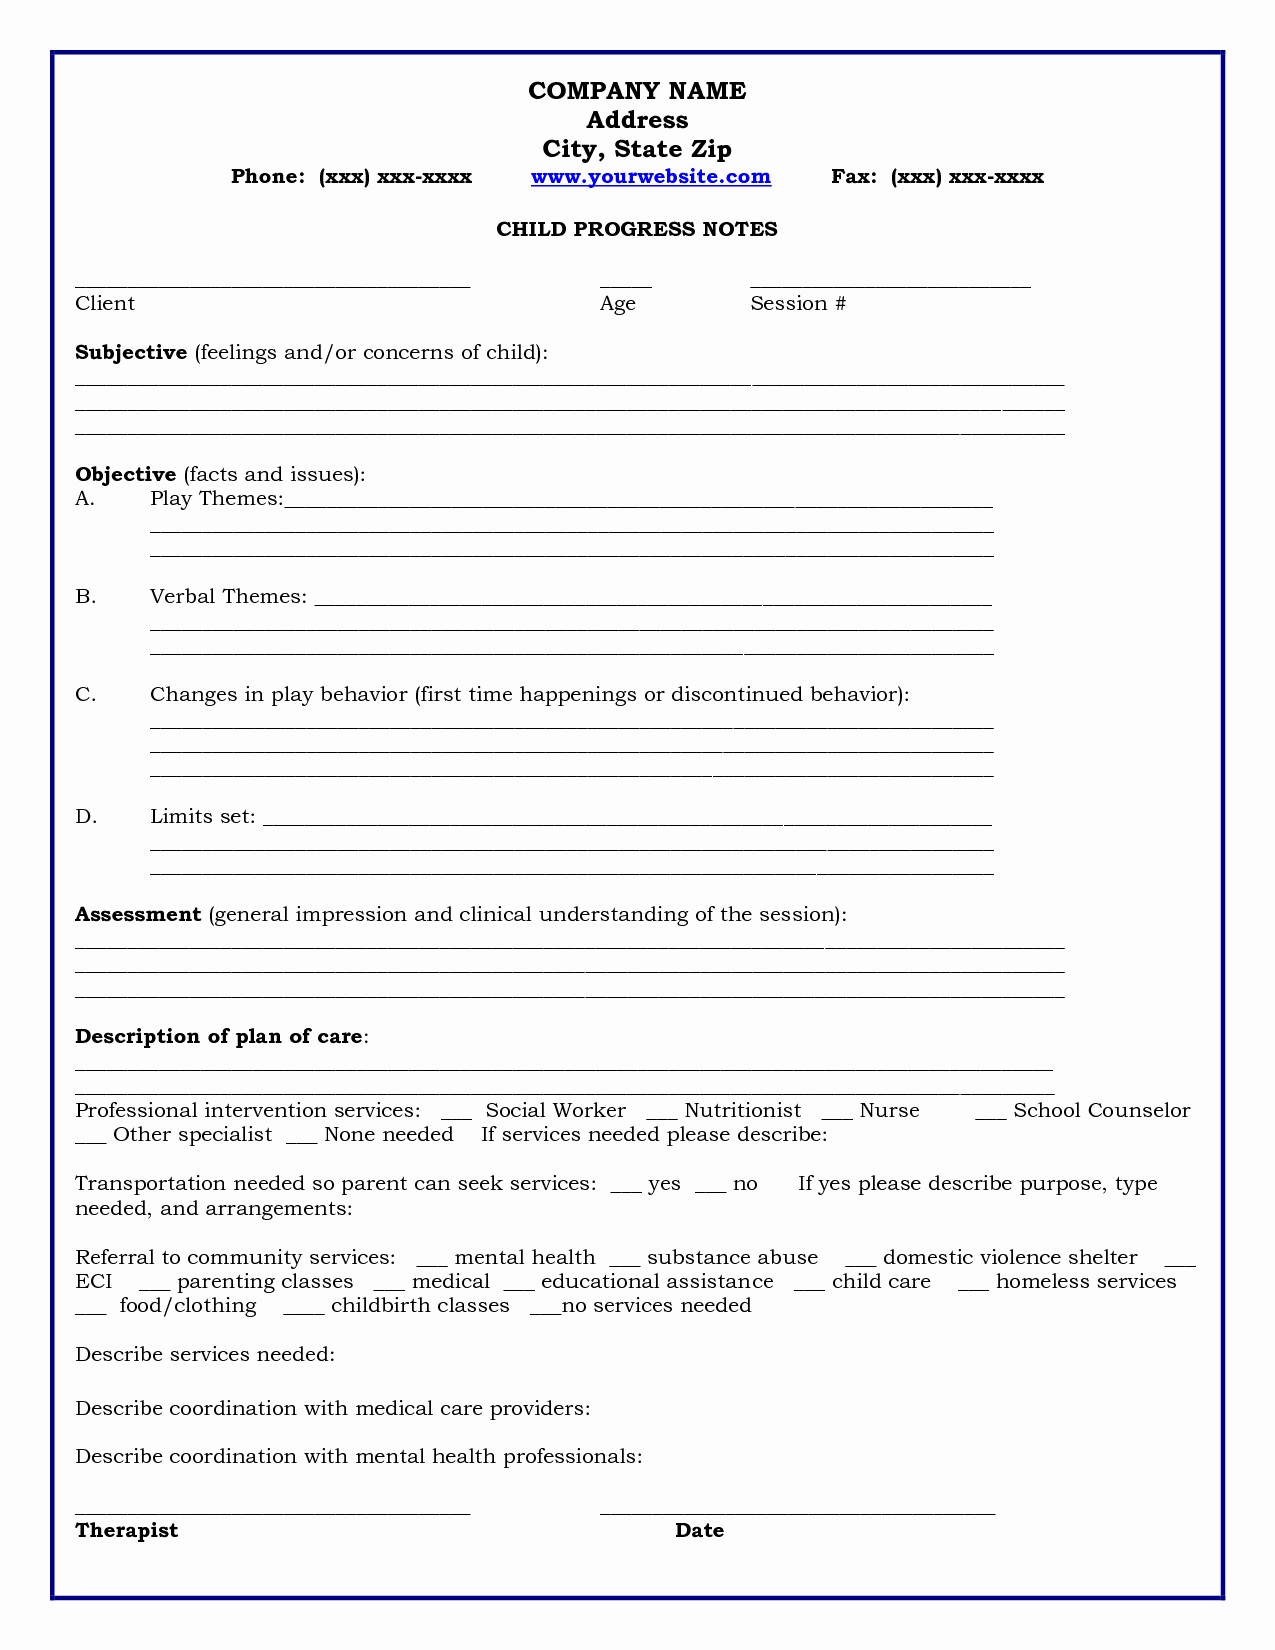 Group therapy Note Template Beautiful Group therapy Note Template How You Can attend Group